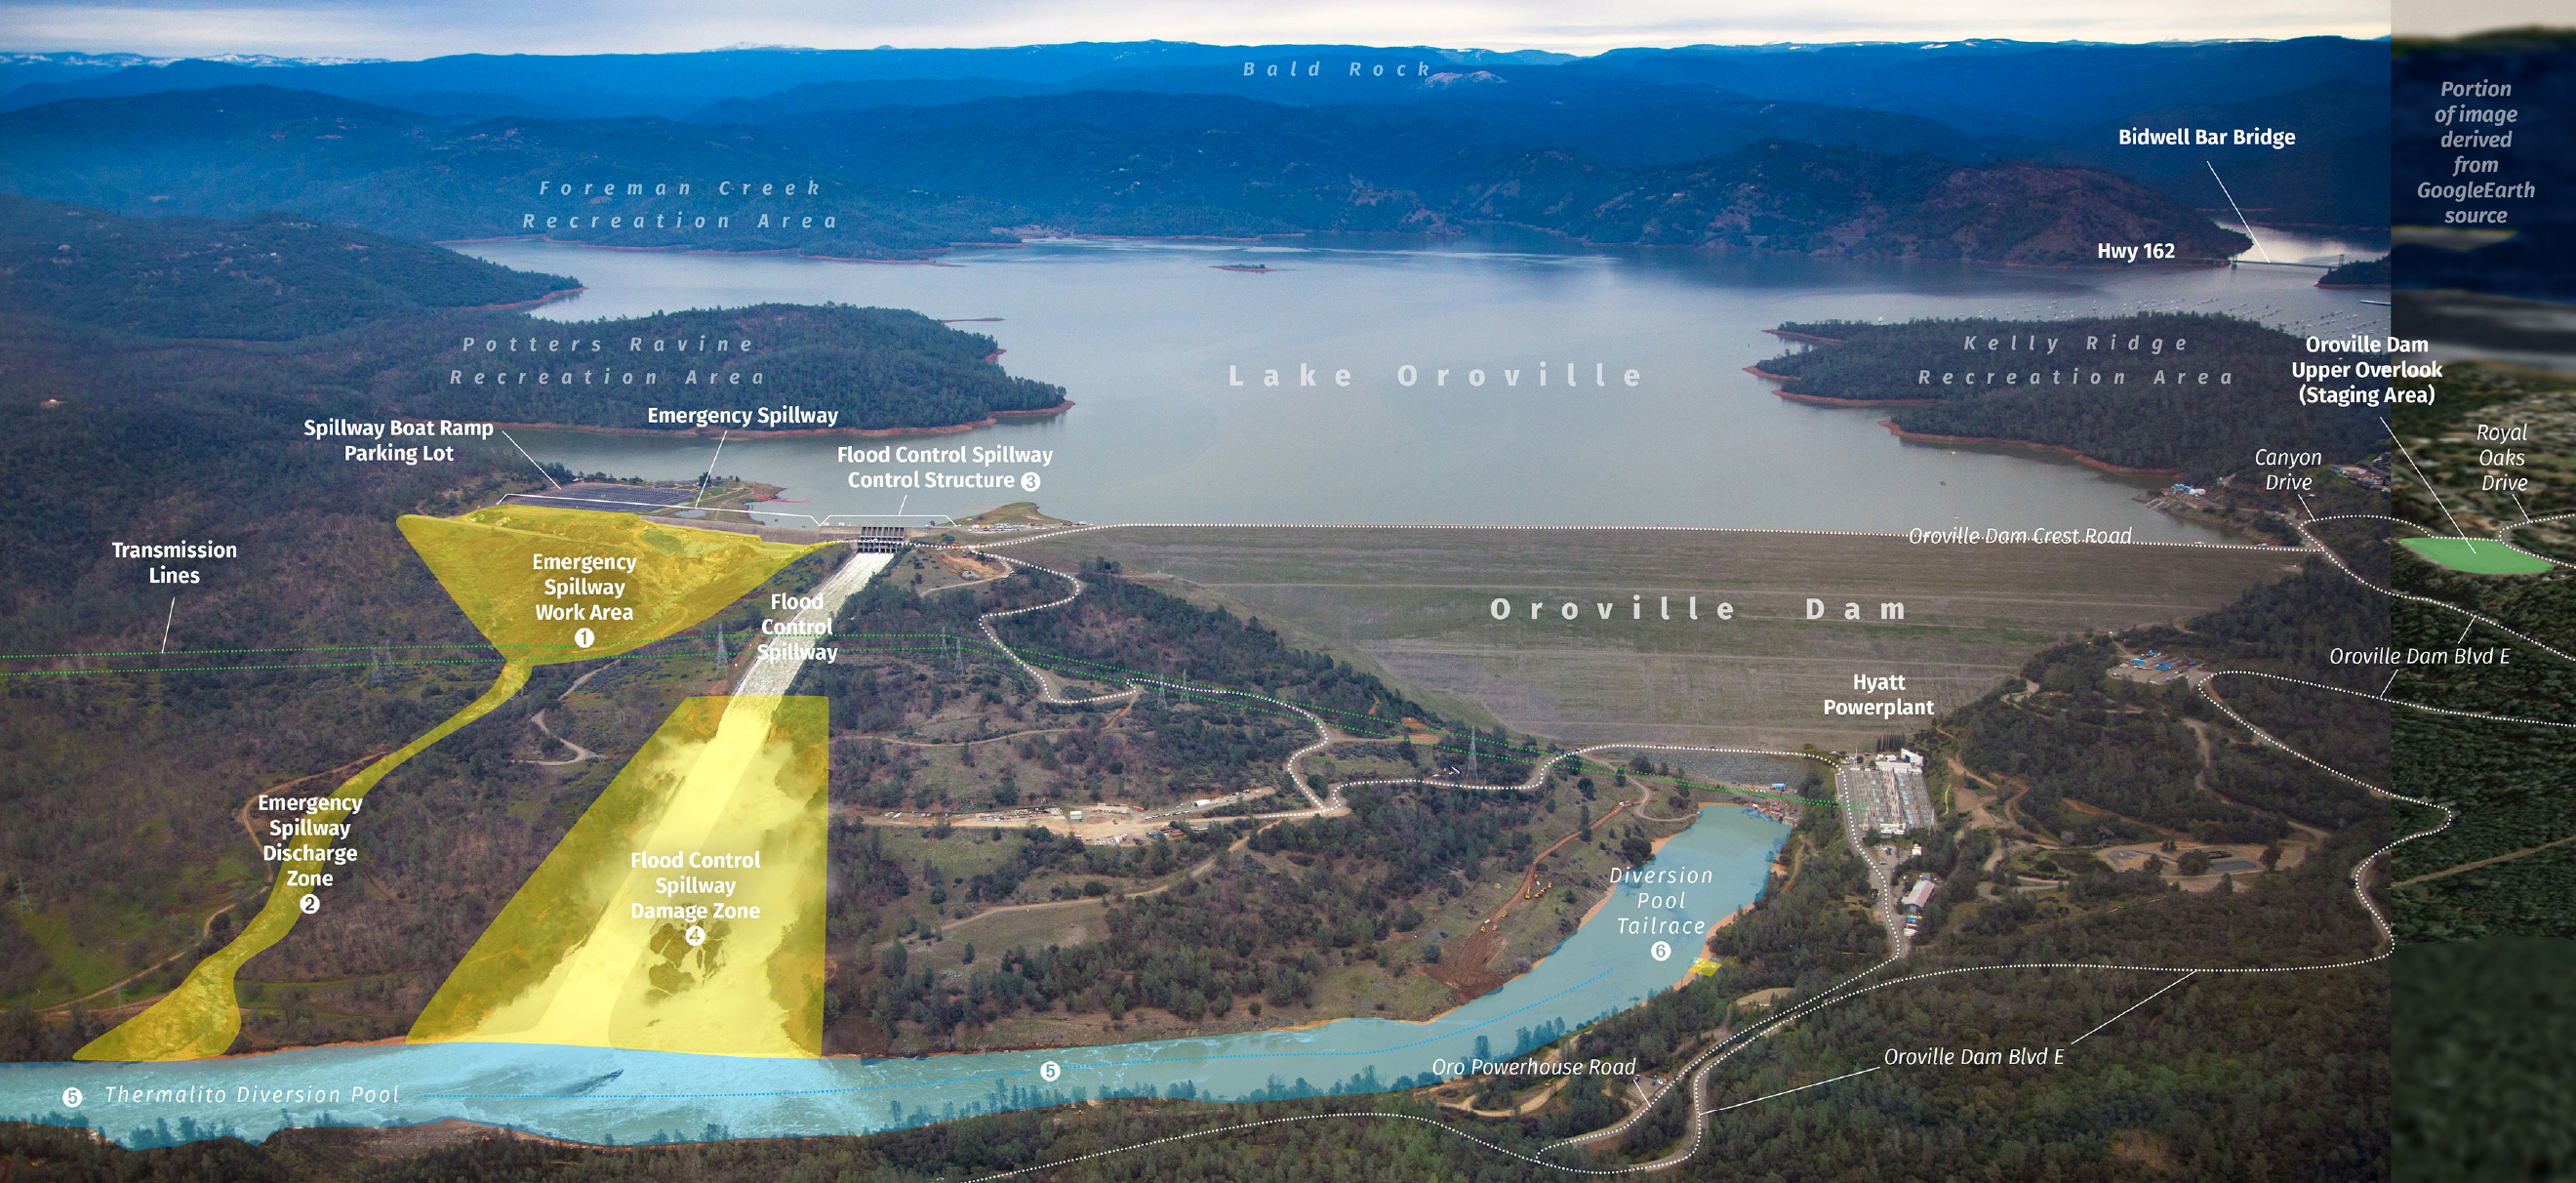 Potential Oroville Dam Failure Puts Over 50,000 Homes at